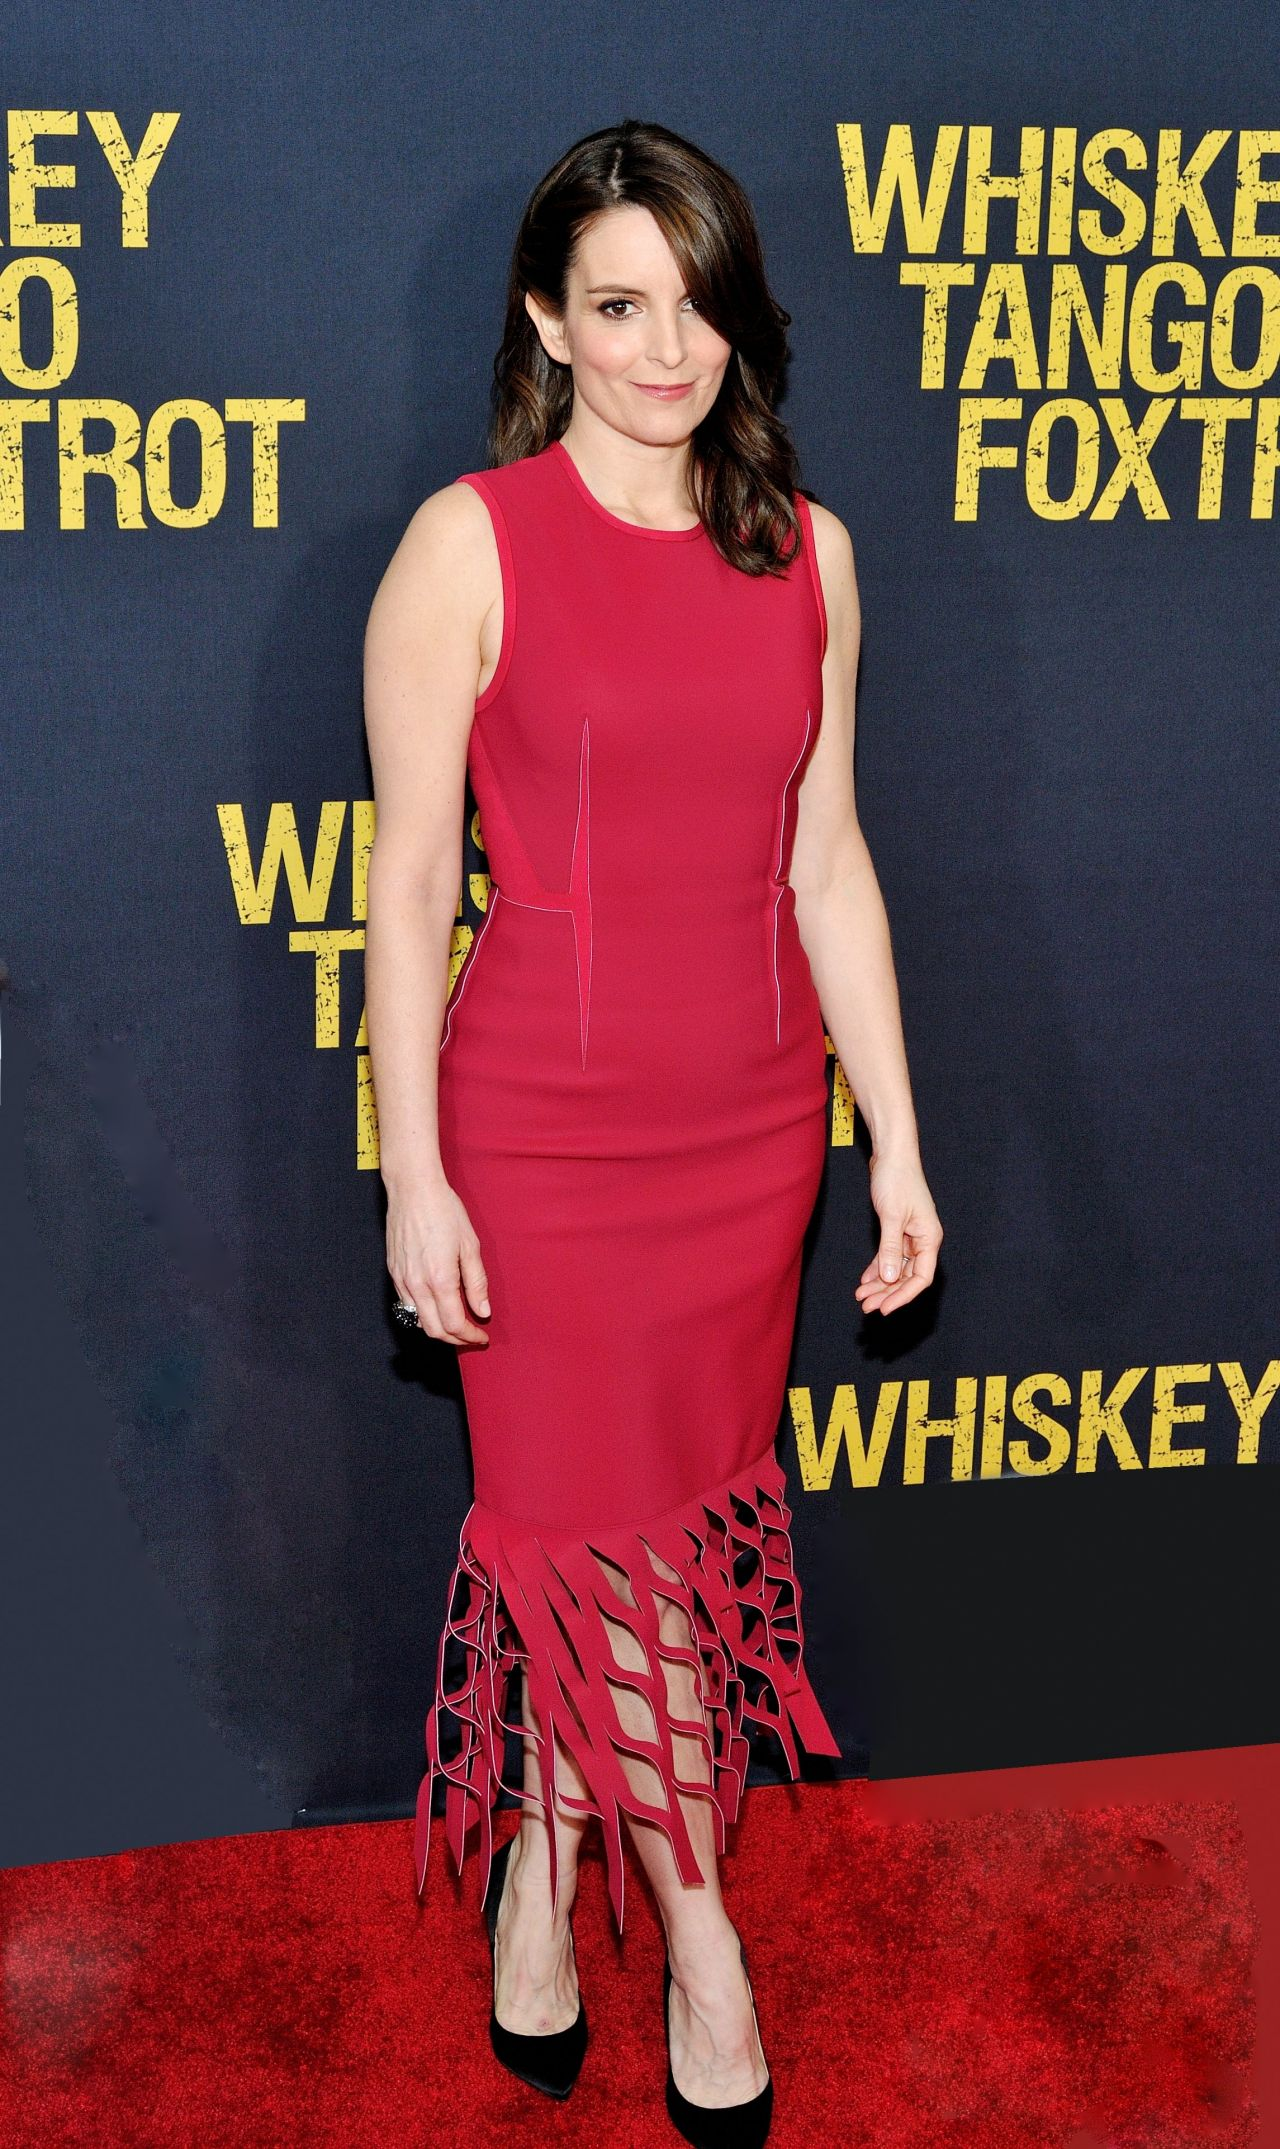 tina-fey-whiskey-tango-foxtrot-premiere-in-new-york-city-2